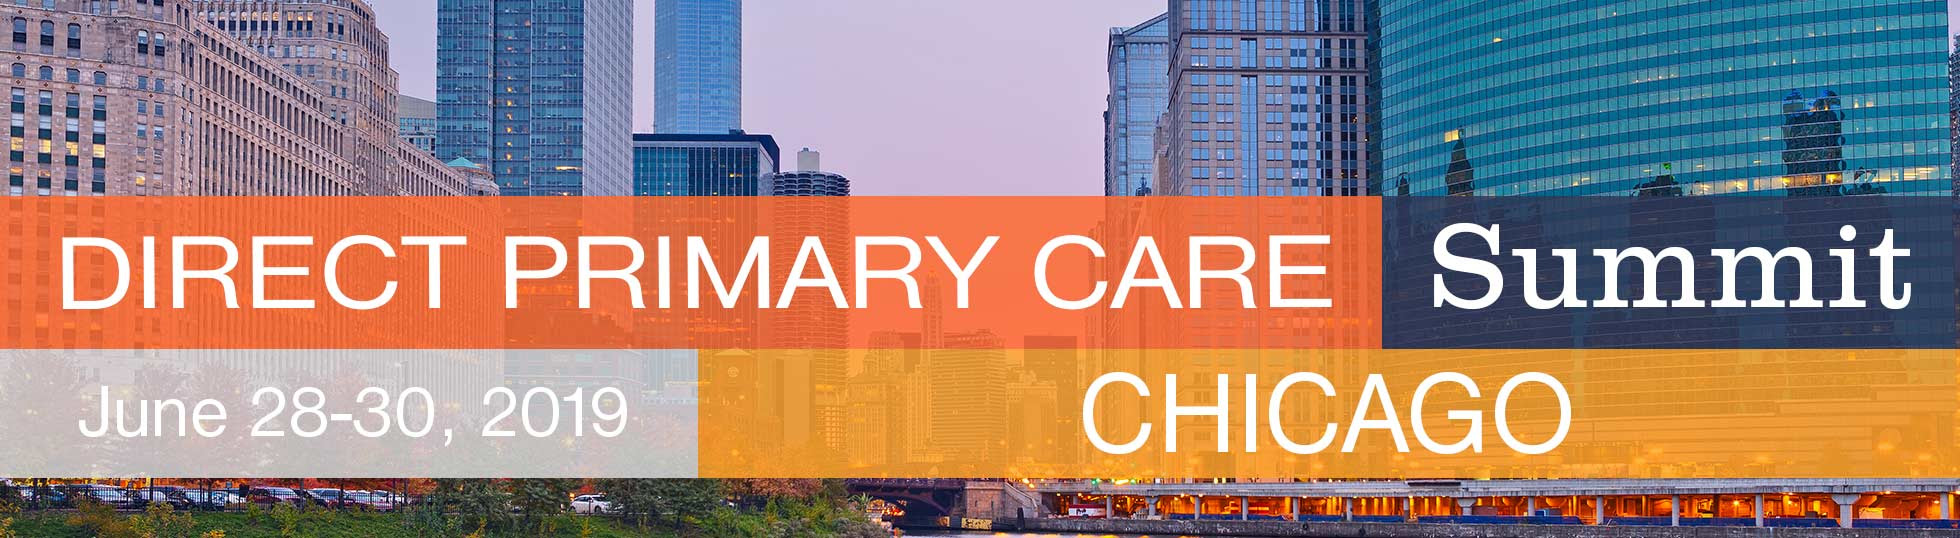 Direct Primary Care Summit, Chicago, June 28 - 30, 2019